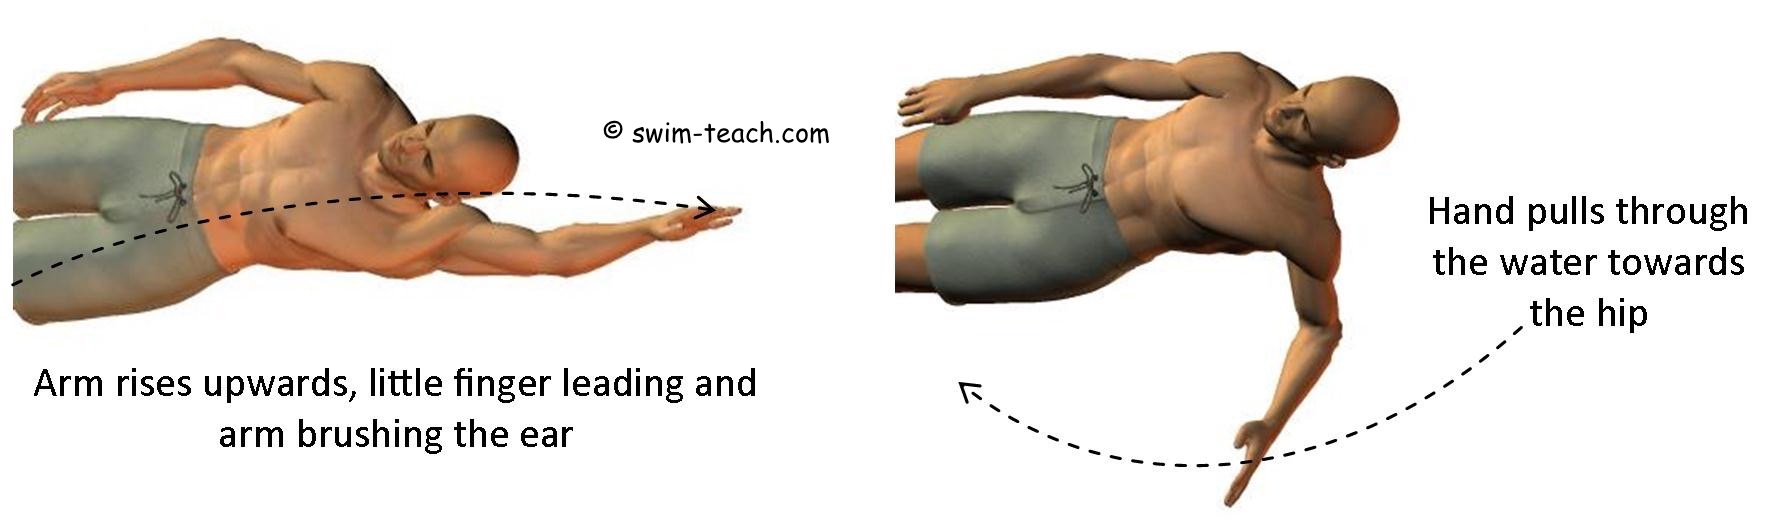 Basic backstroke arm technique for beginners